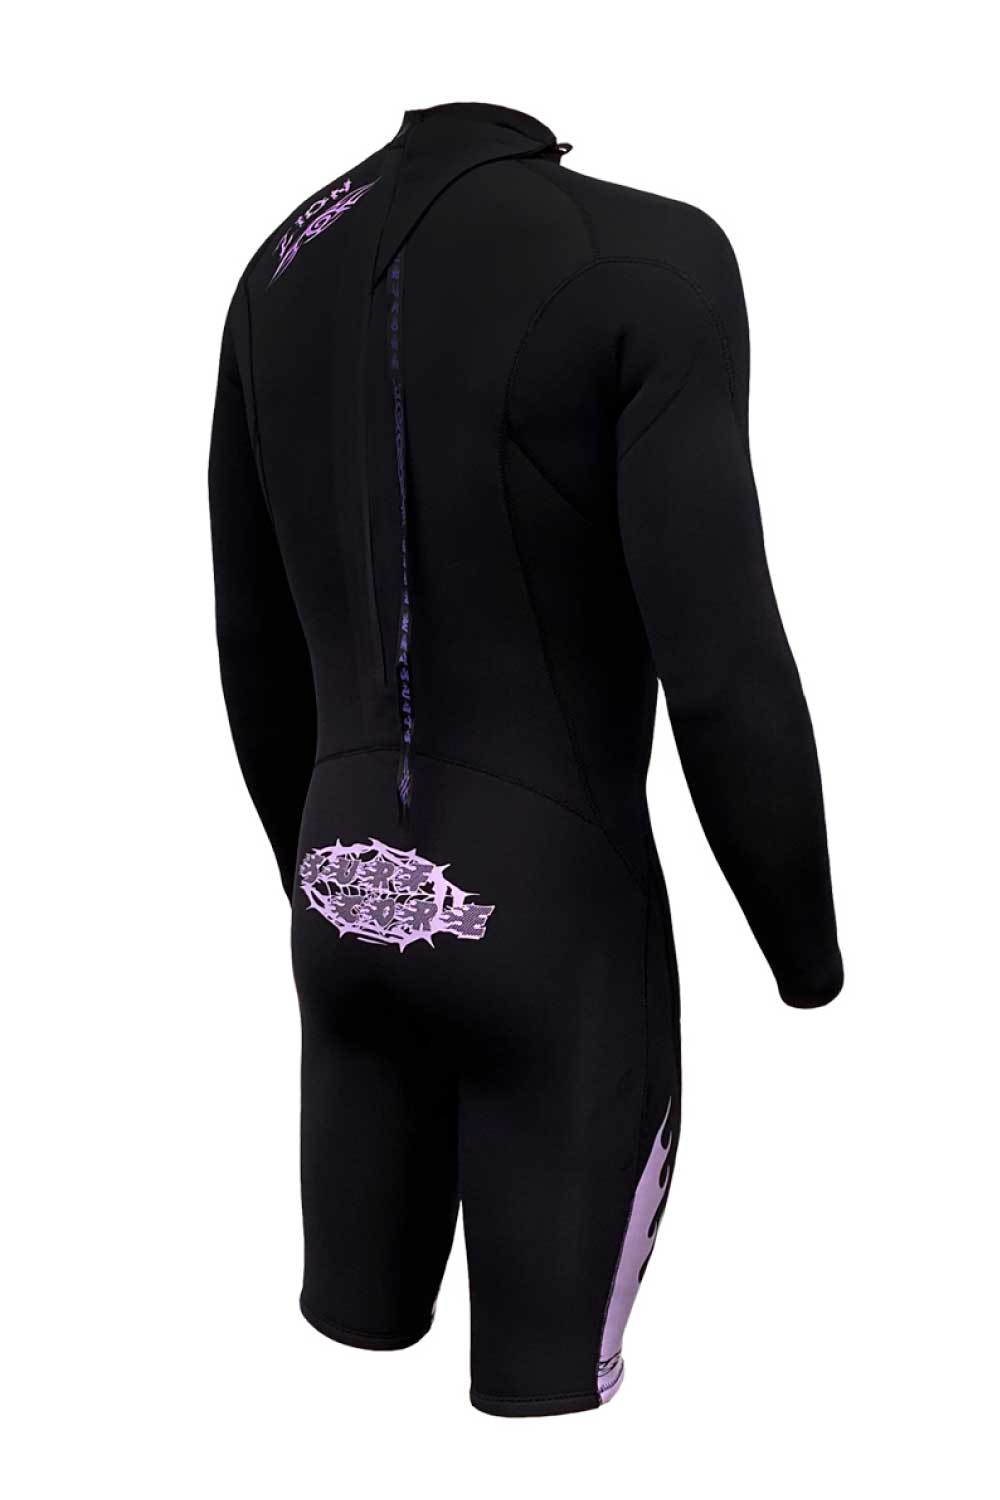 ZION Corelord 2/2mm Long Sleeve Springsuit